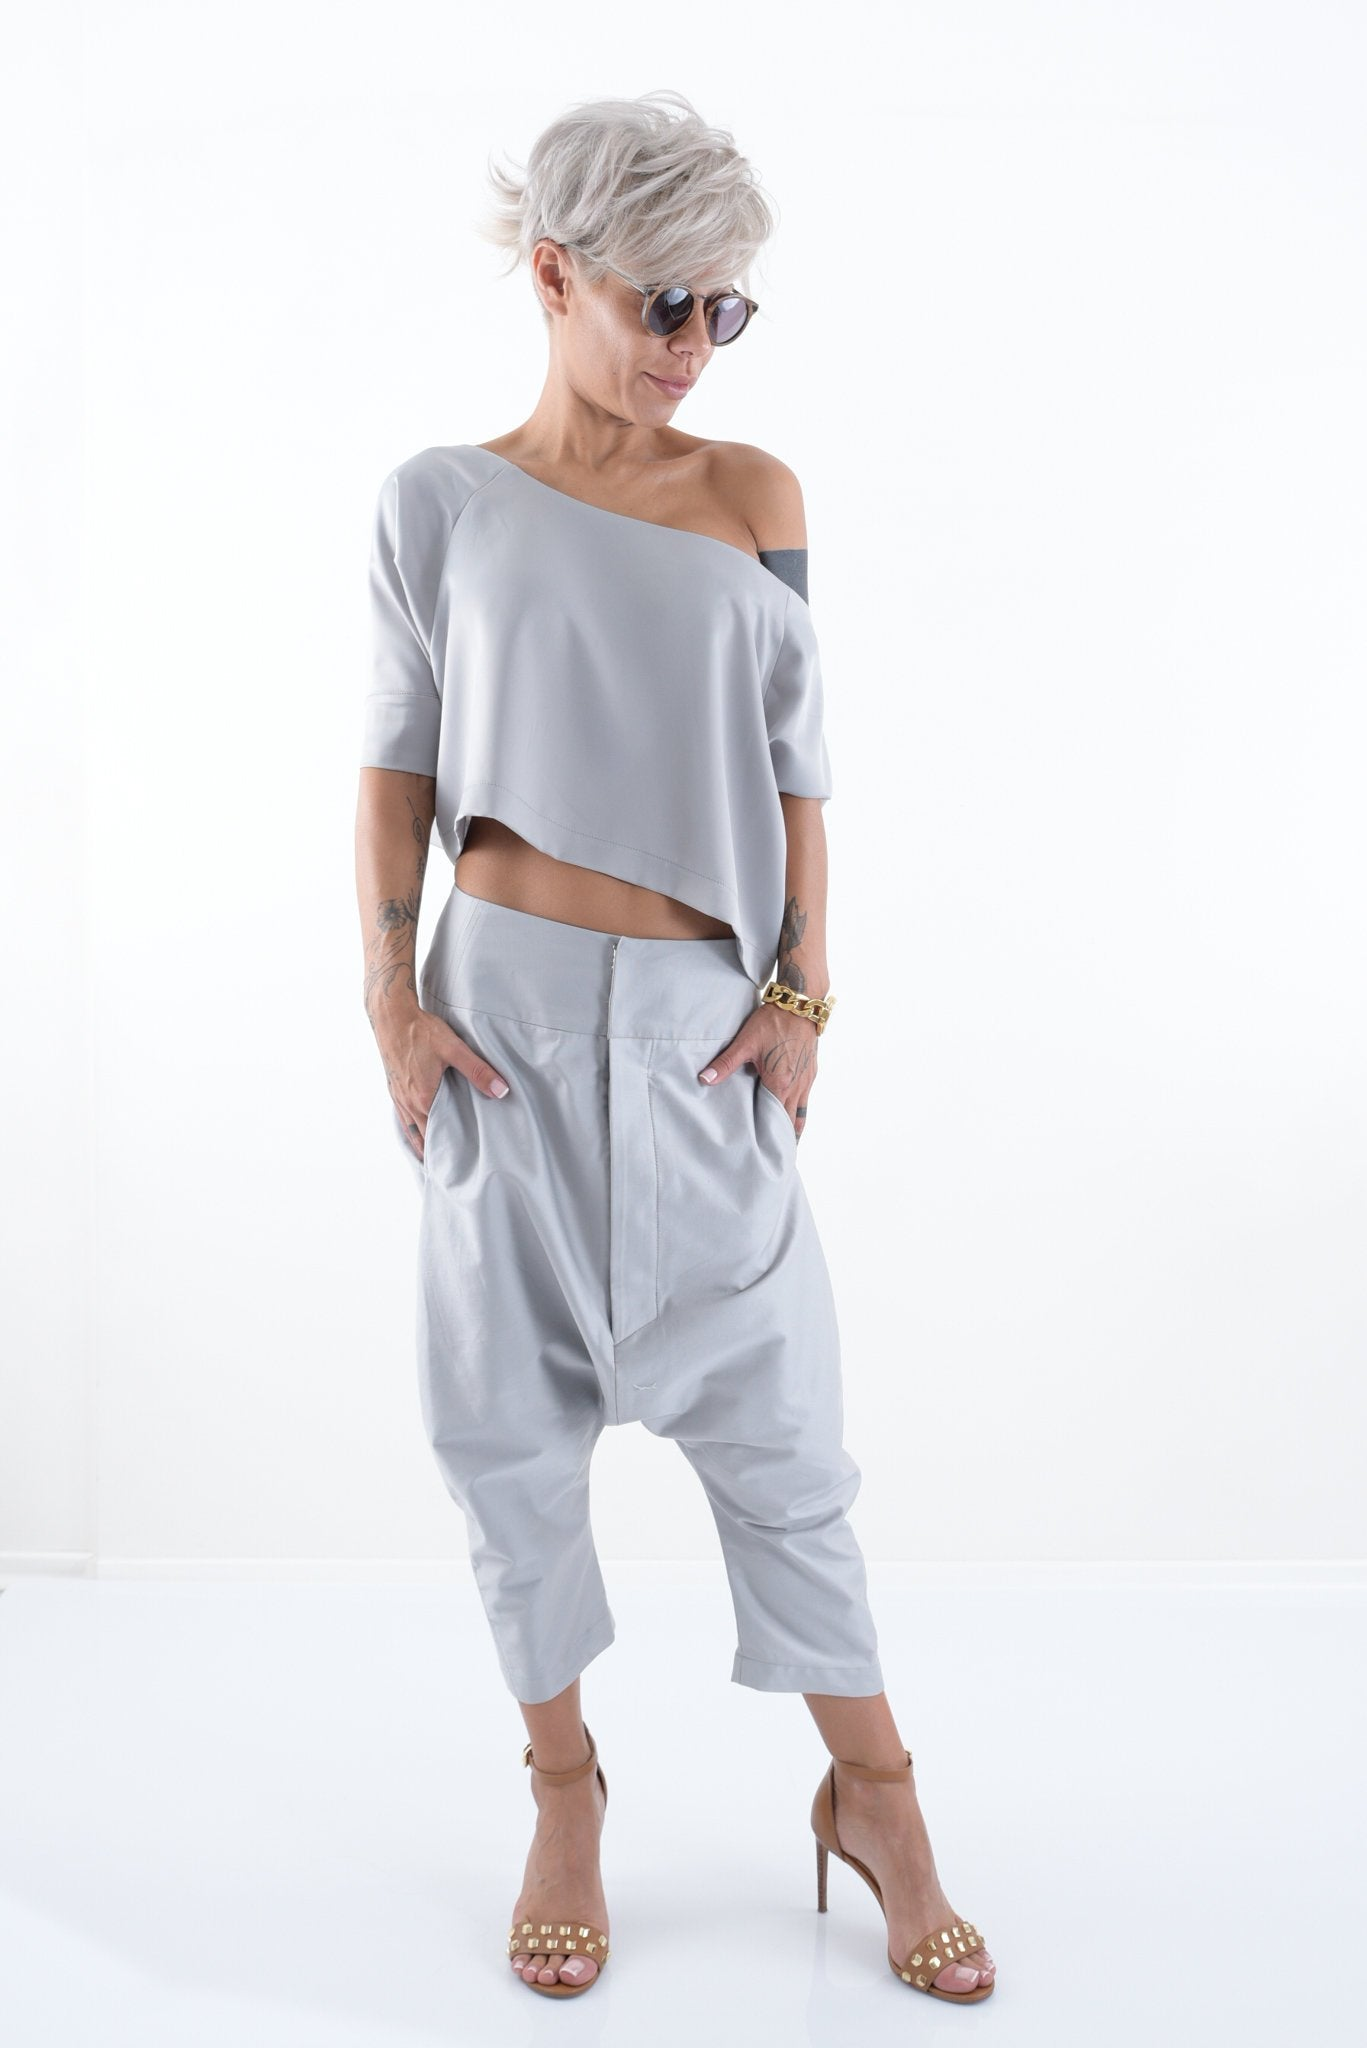 Grey Loose Harem Trendy Pants - Clothes By Locker Room